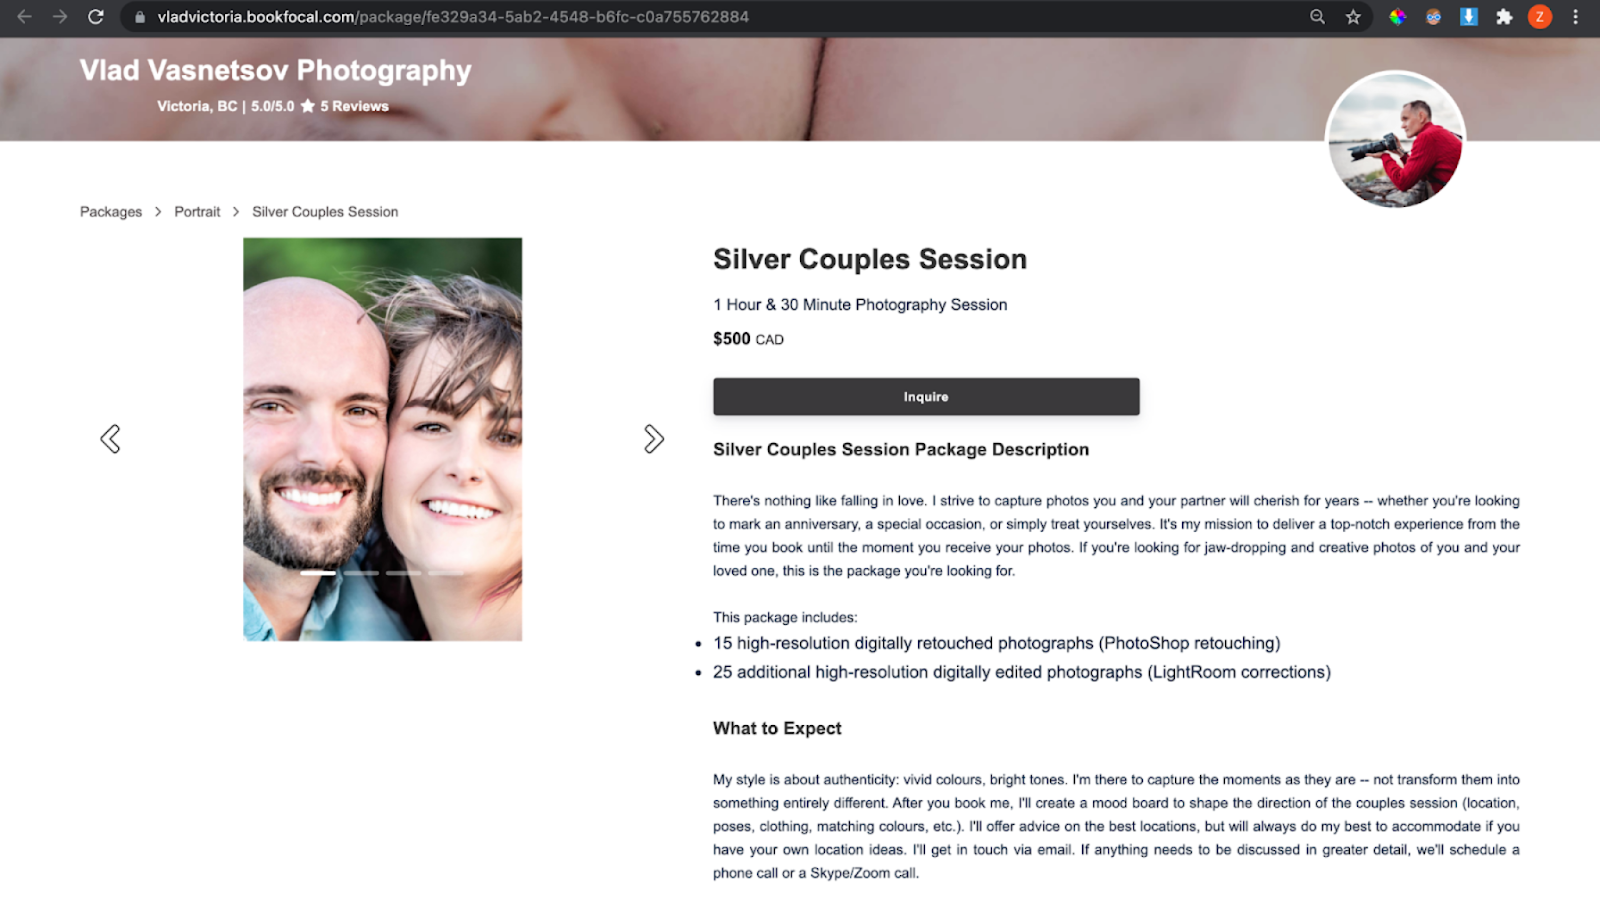 Silver Couples Session in Victoria, BC on Focal's marketplace